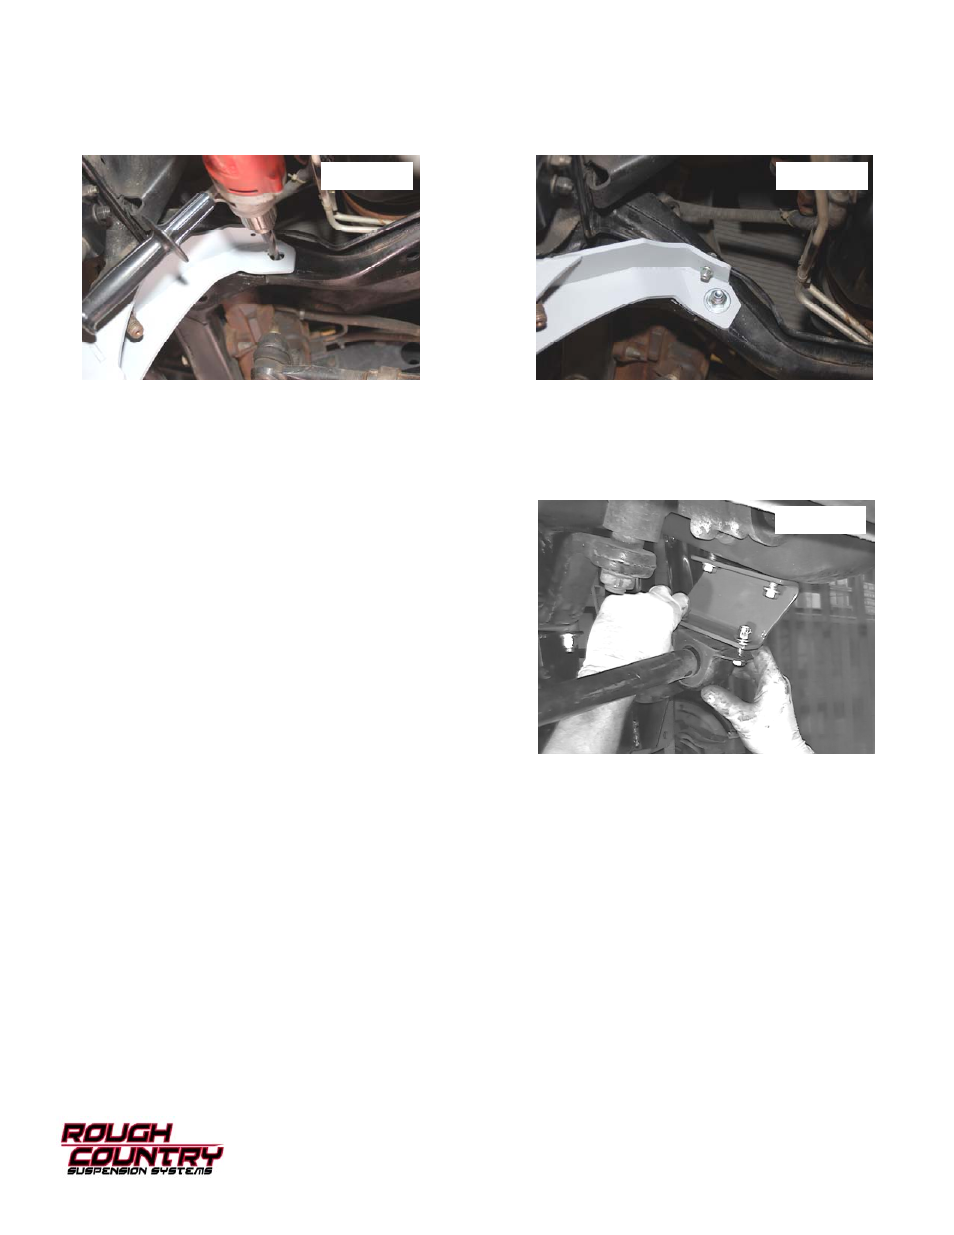 Rough Country 372 20 User Manual | Page 4 / 6